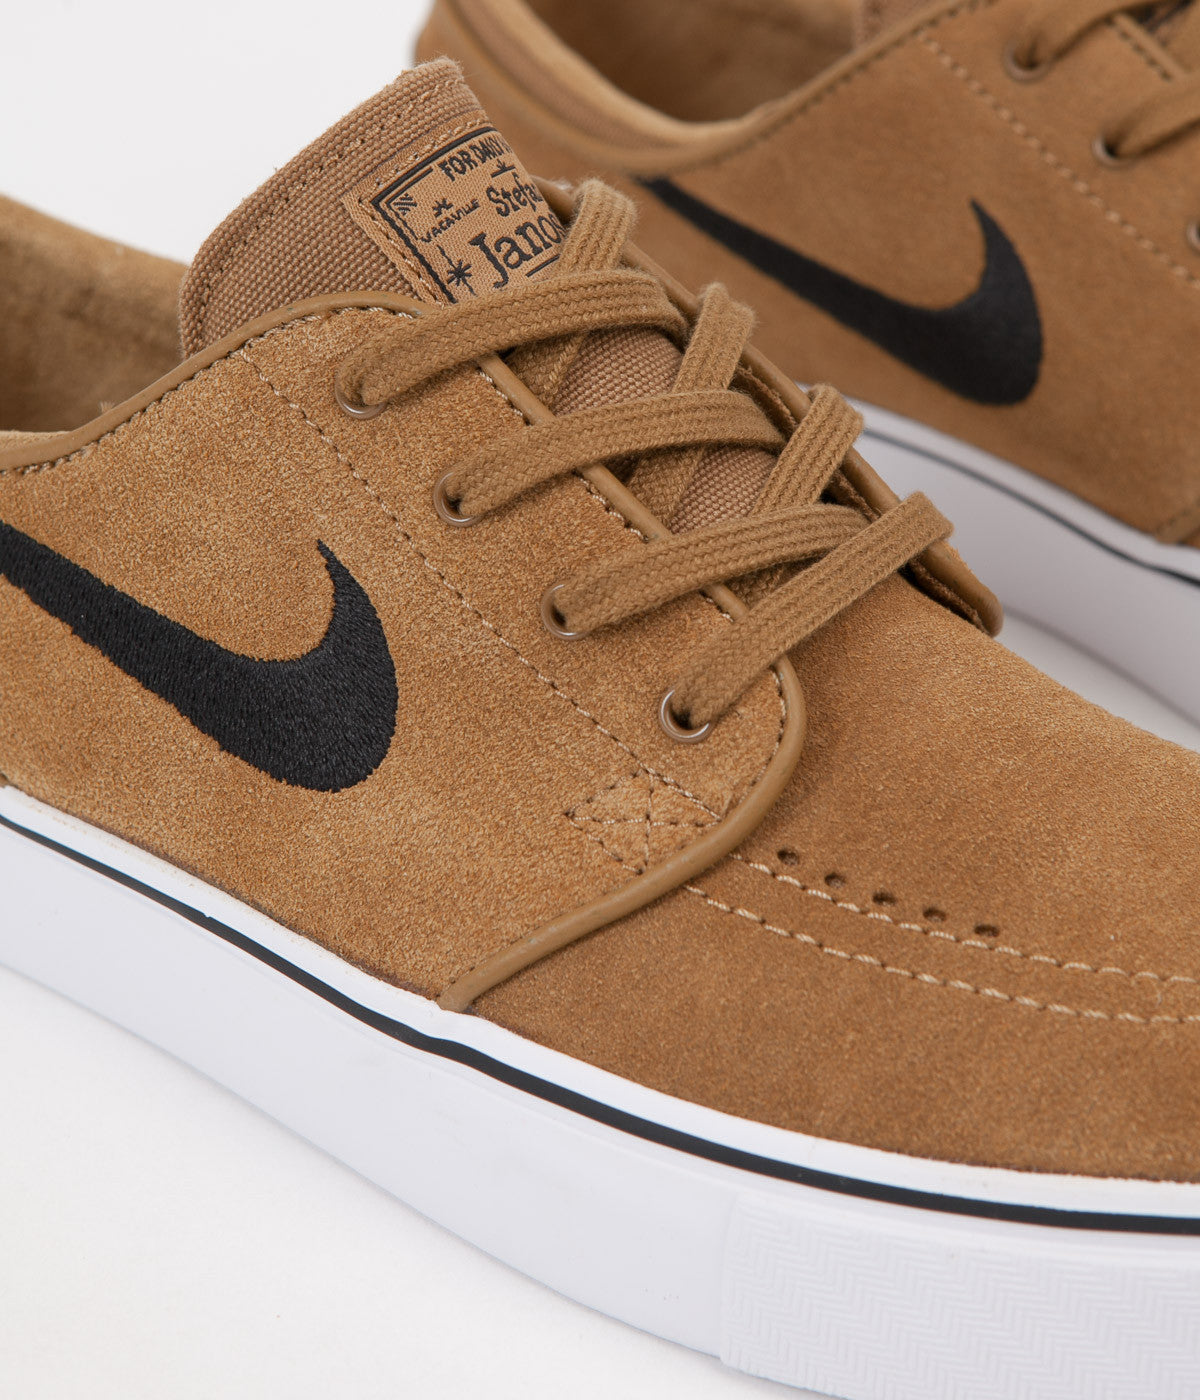 Nike SB Stefan Janoski Shoes - Golden Beige / Black